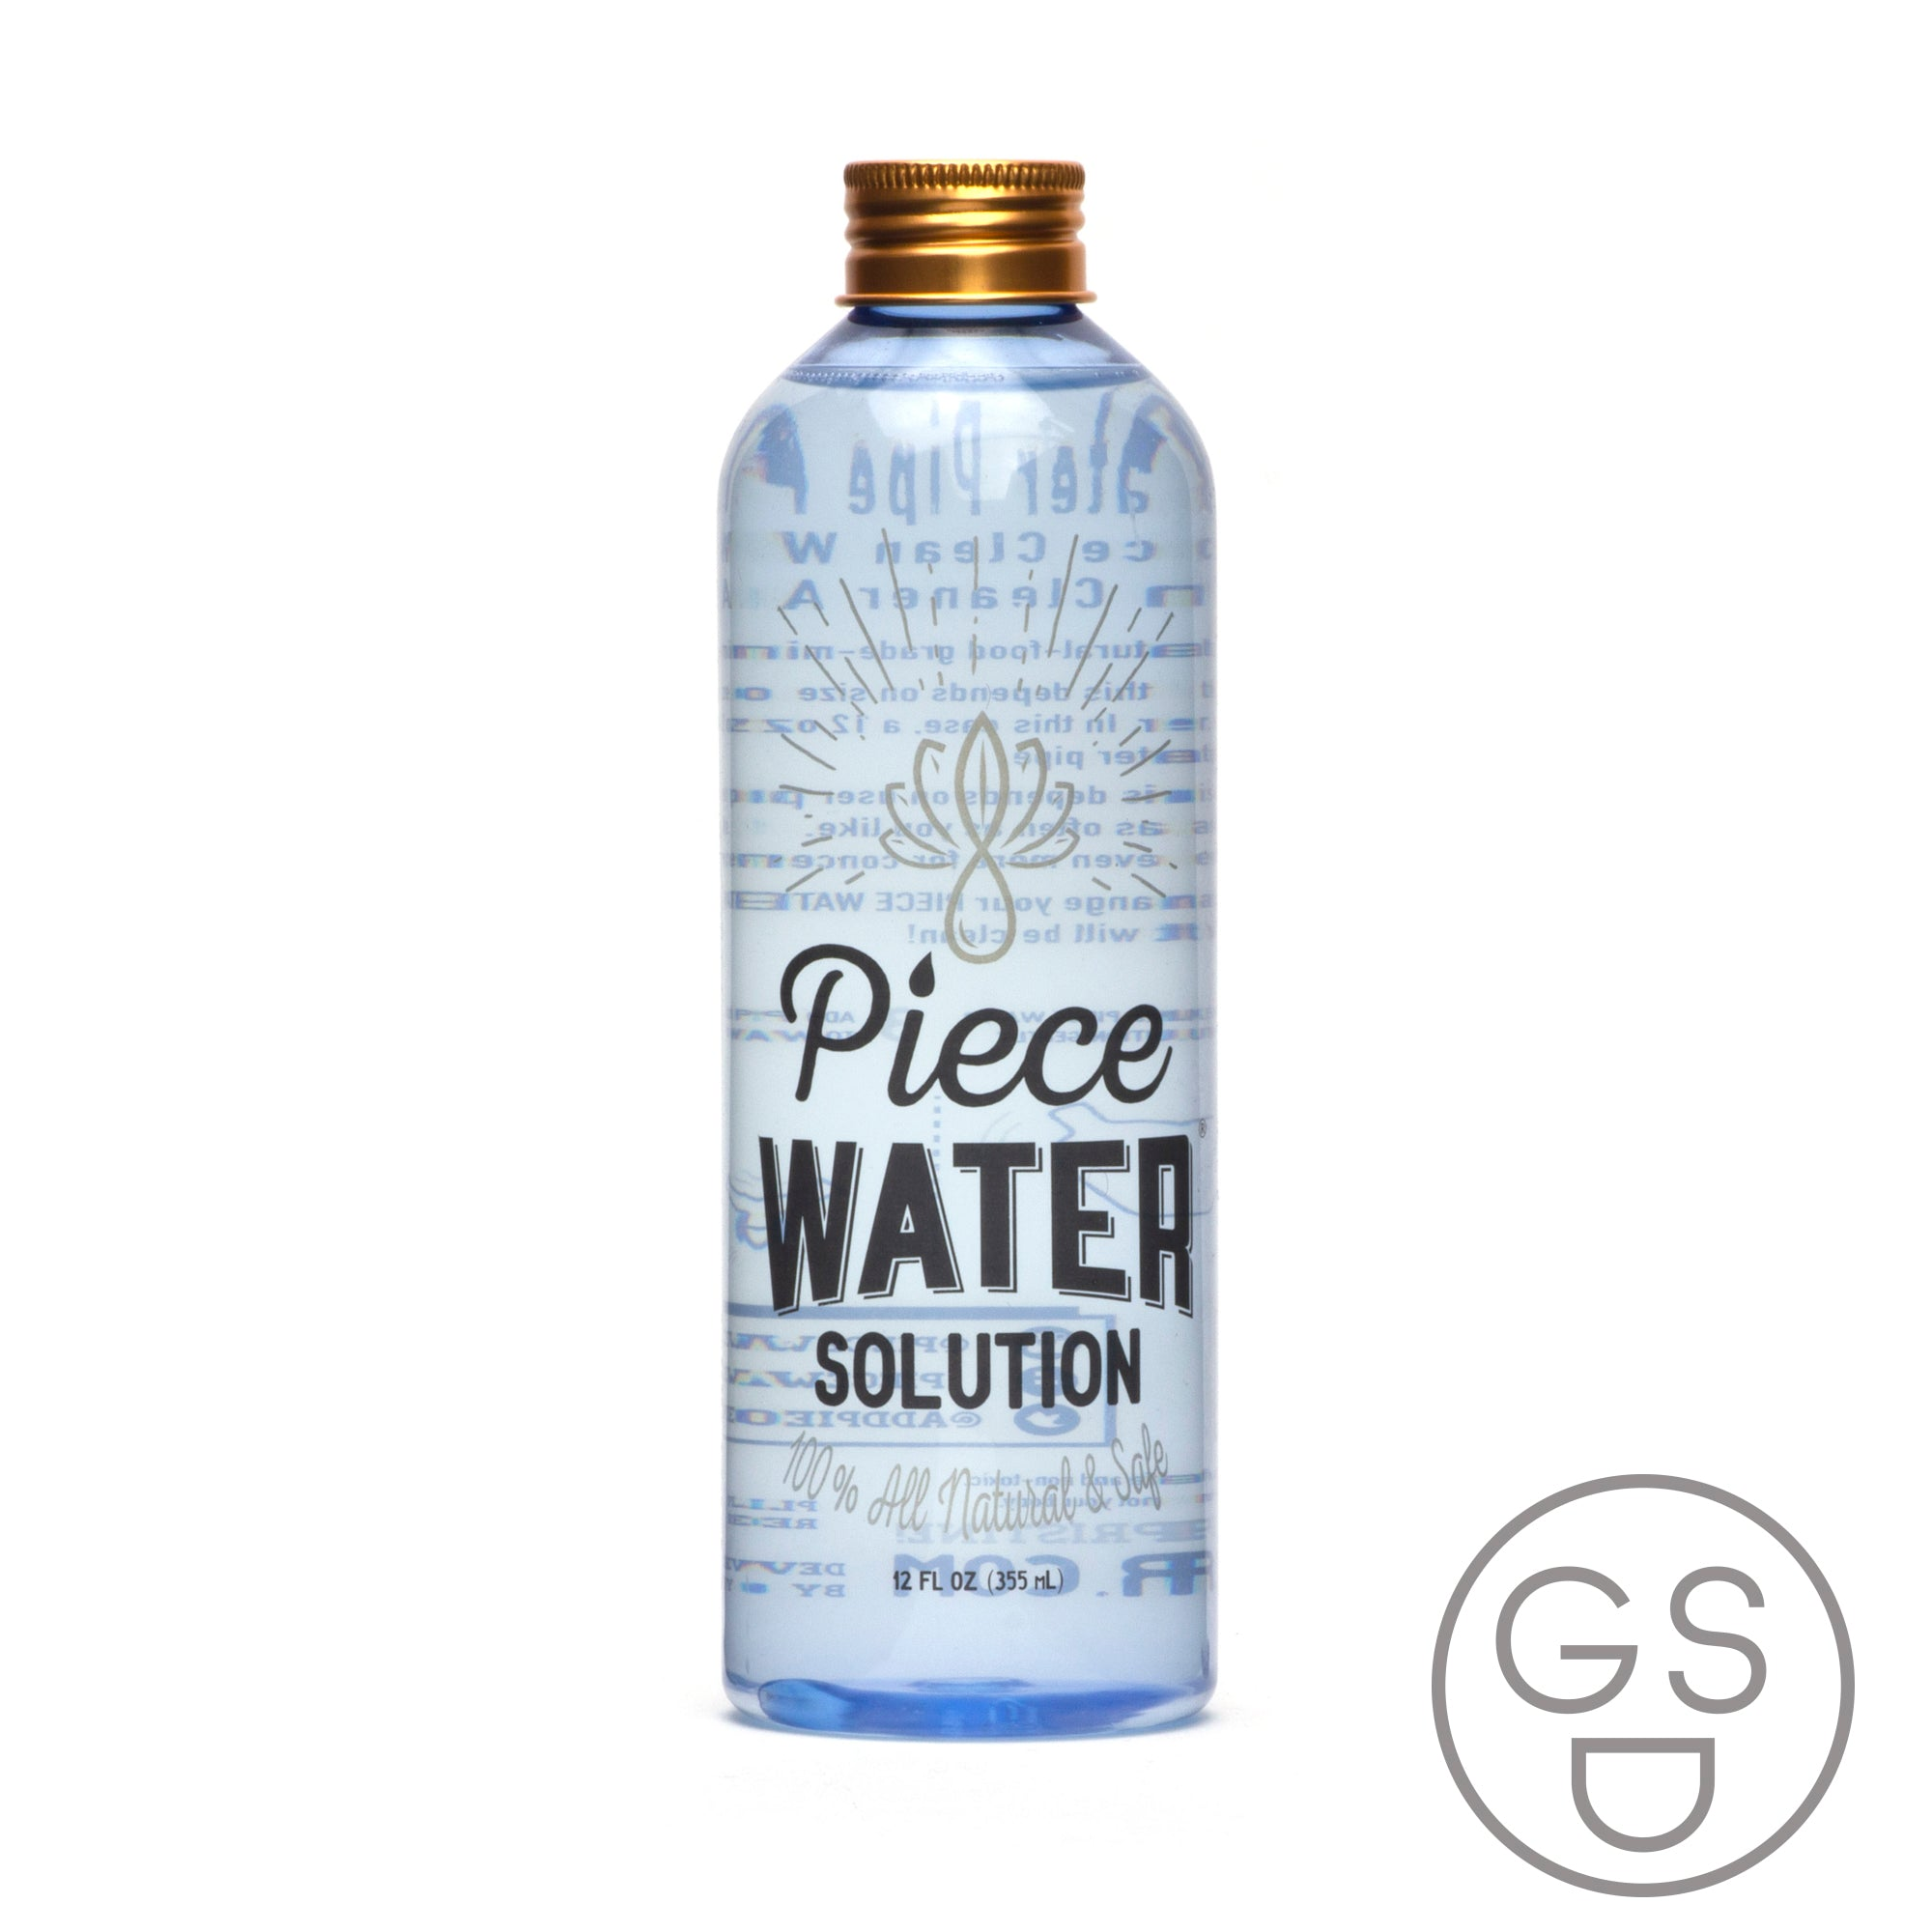 Piece Water Solution - 355ml